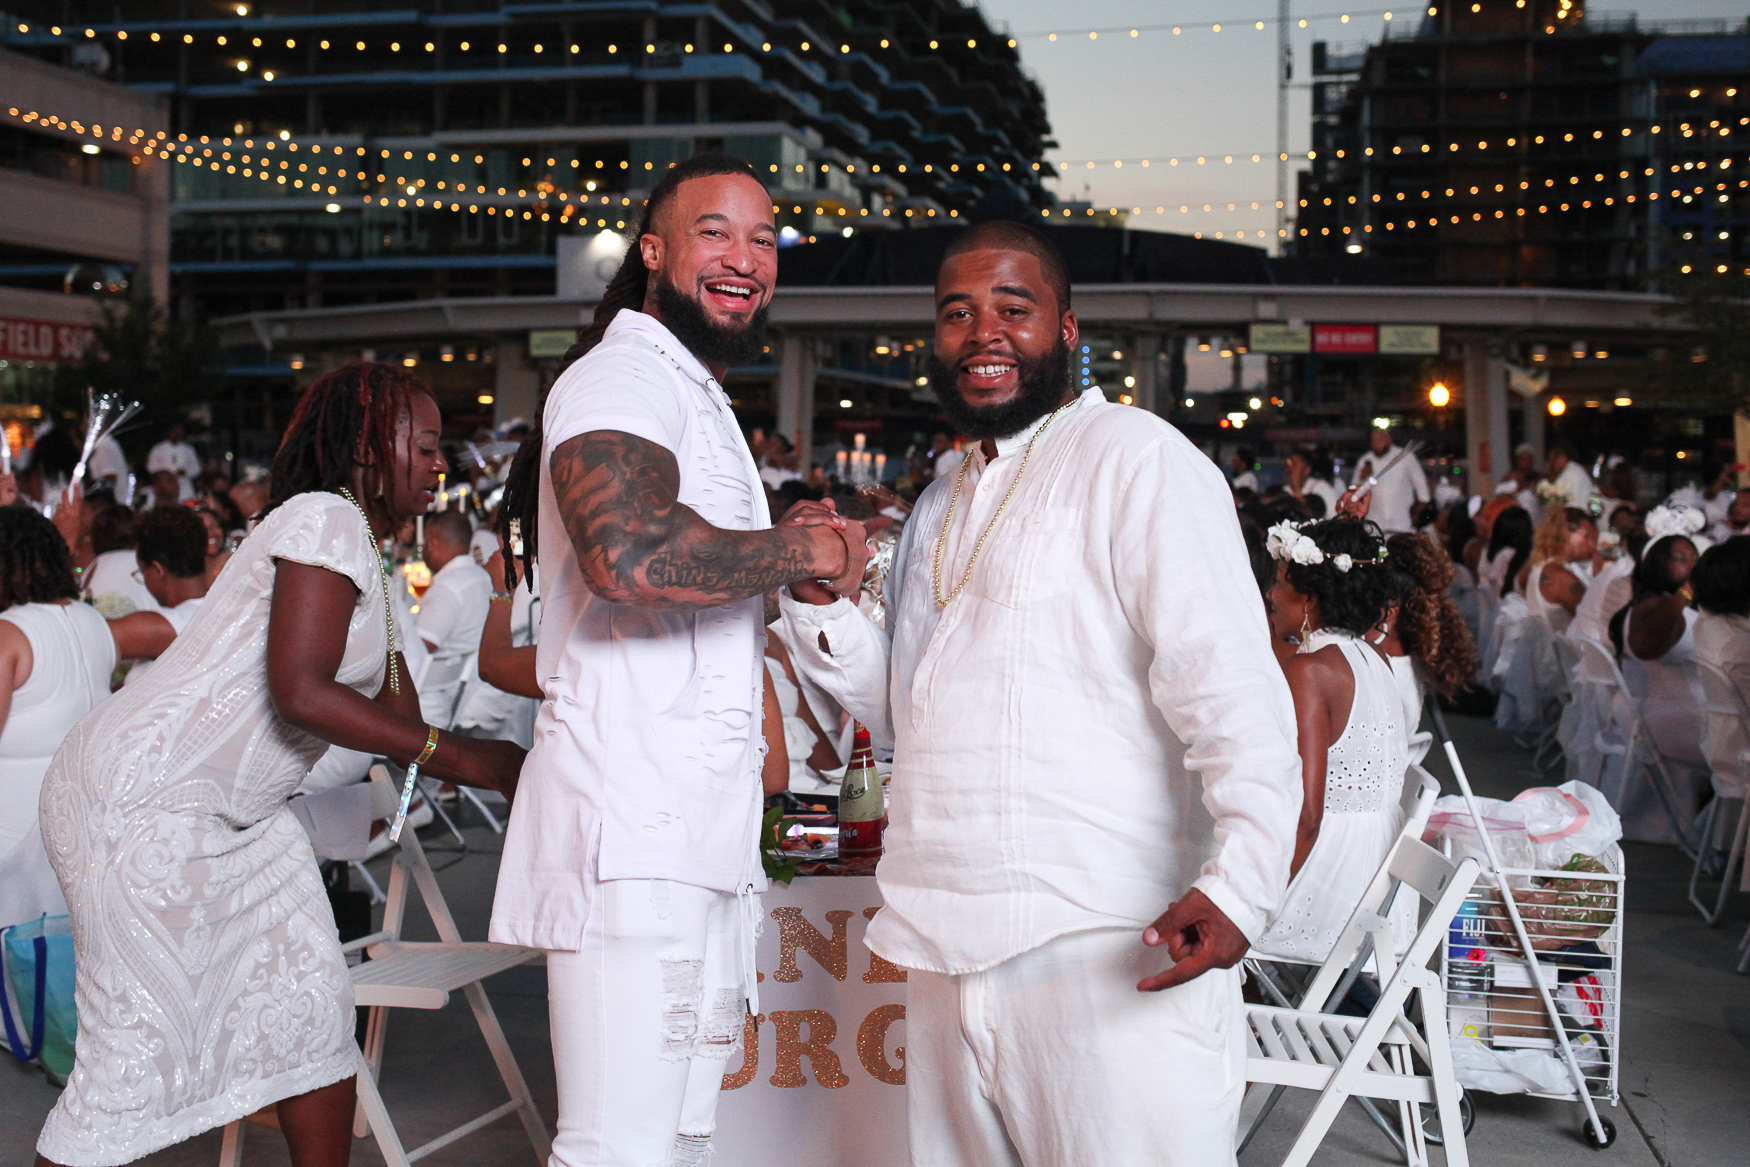 These guys brought their A-game to Diner en Blanc! We love how they stuck with the theme but went above the basic.{ } (Amanda Andrade-Rhoades/DC Refined)